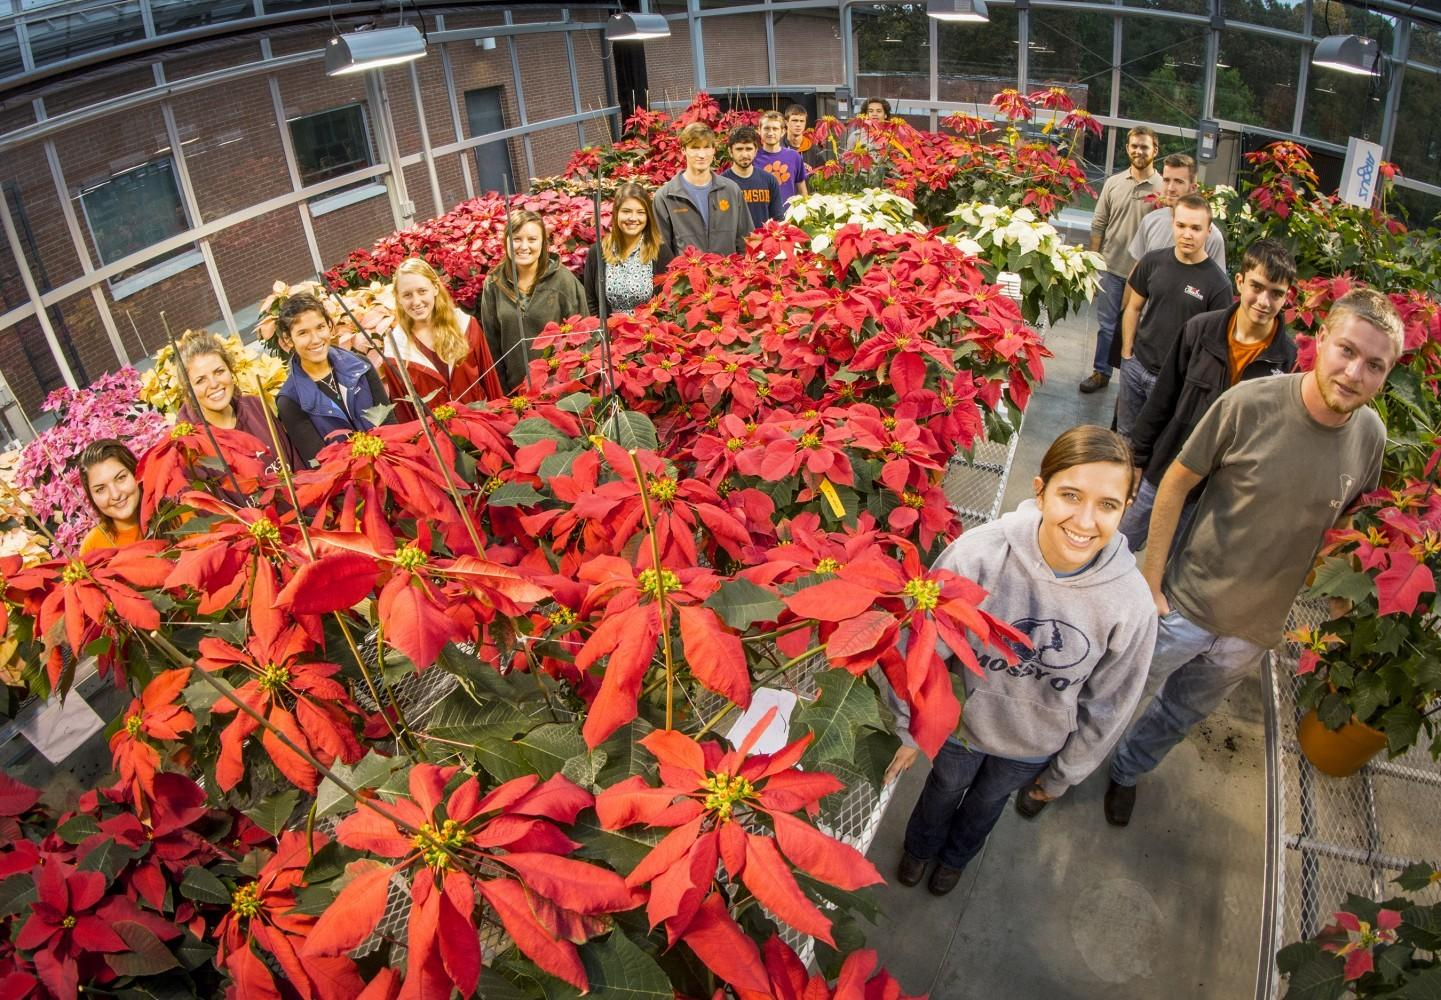 Clemson Horticulture Students Poinsettias Display